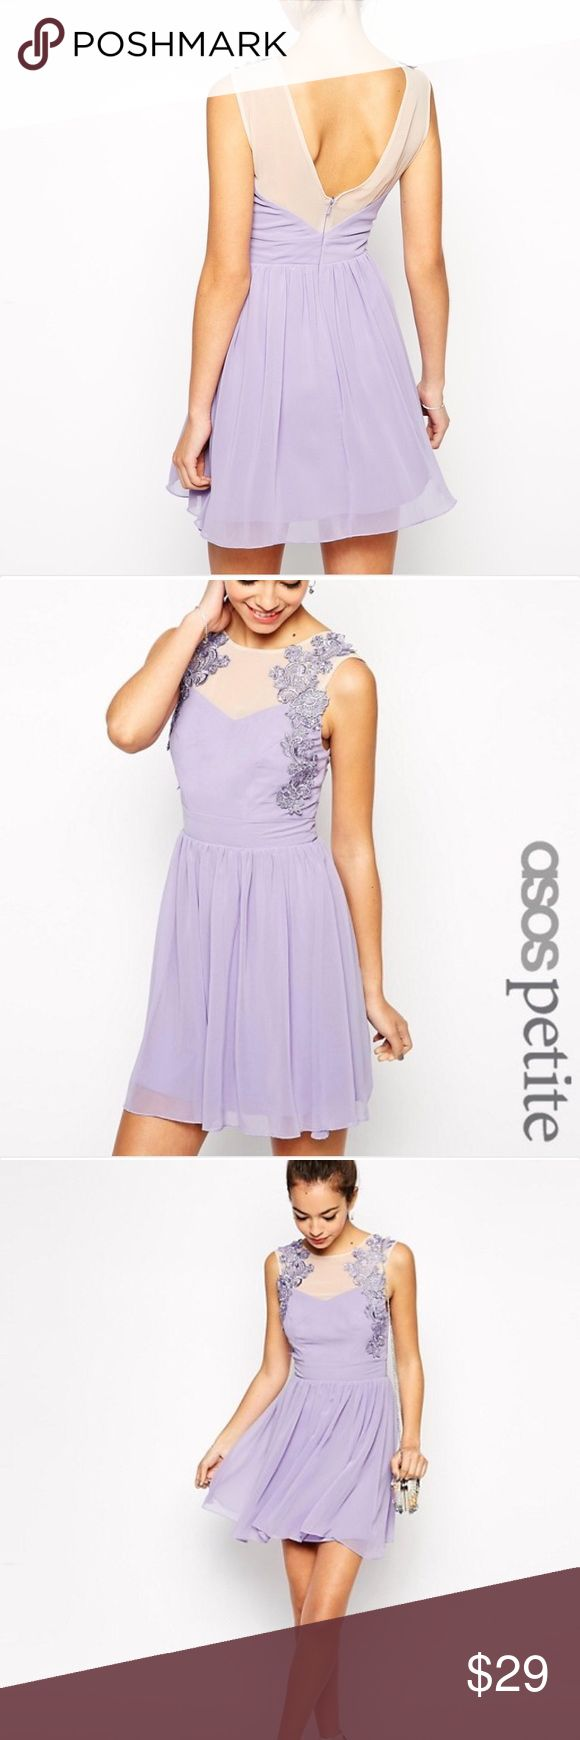 ASOS Petite Crochet Trim Chiffon Skater Dress Gorgeous Lavender shaded dress with beautiful Floral Lace Detail and Keyhole back. In excellent condition. Size US 8. ASOS Petite Dresses